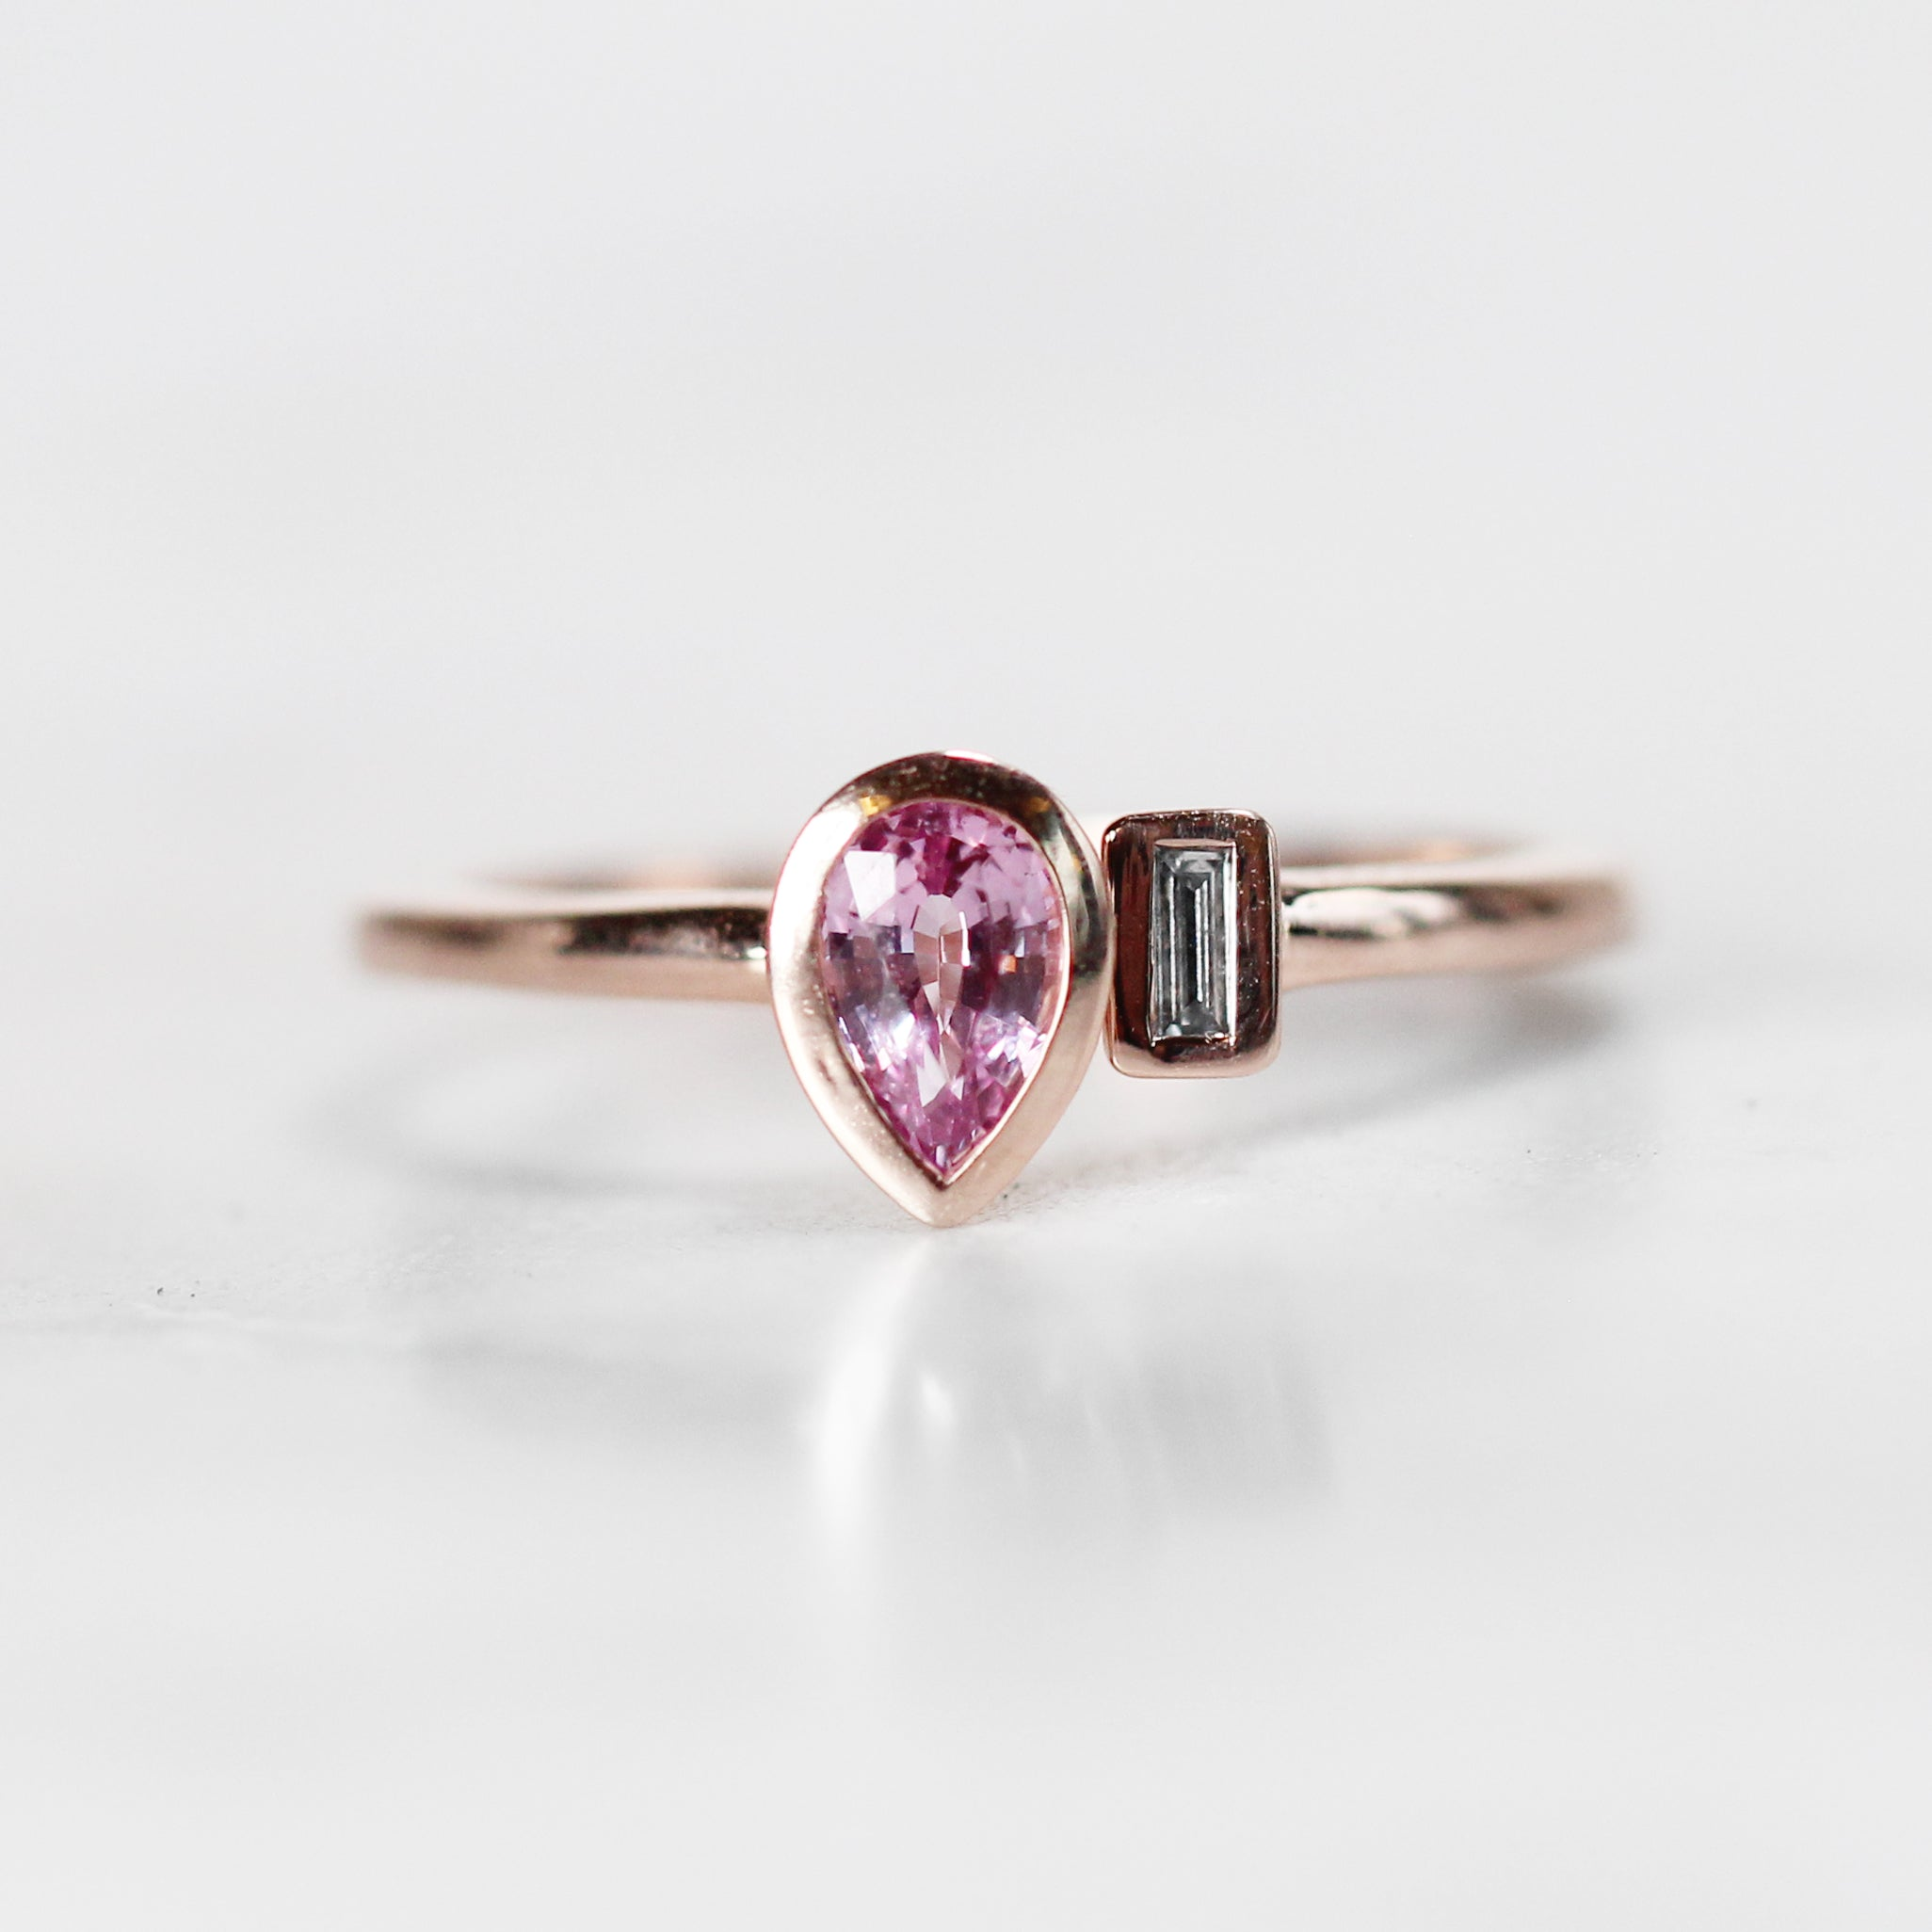 Hazel Ring with Pink Sapphire Pear and Diamond Baguette - Your choice of 14k gold - Celestial Diamonds ® by Midwinter Co.